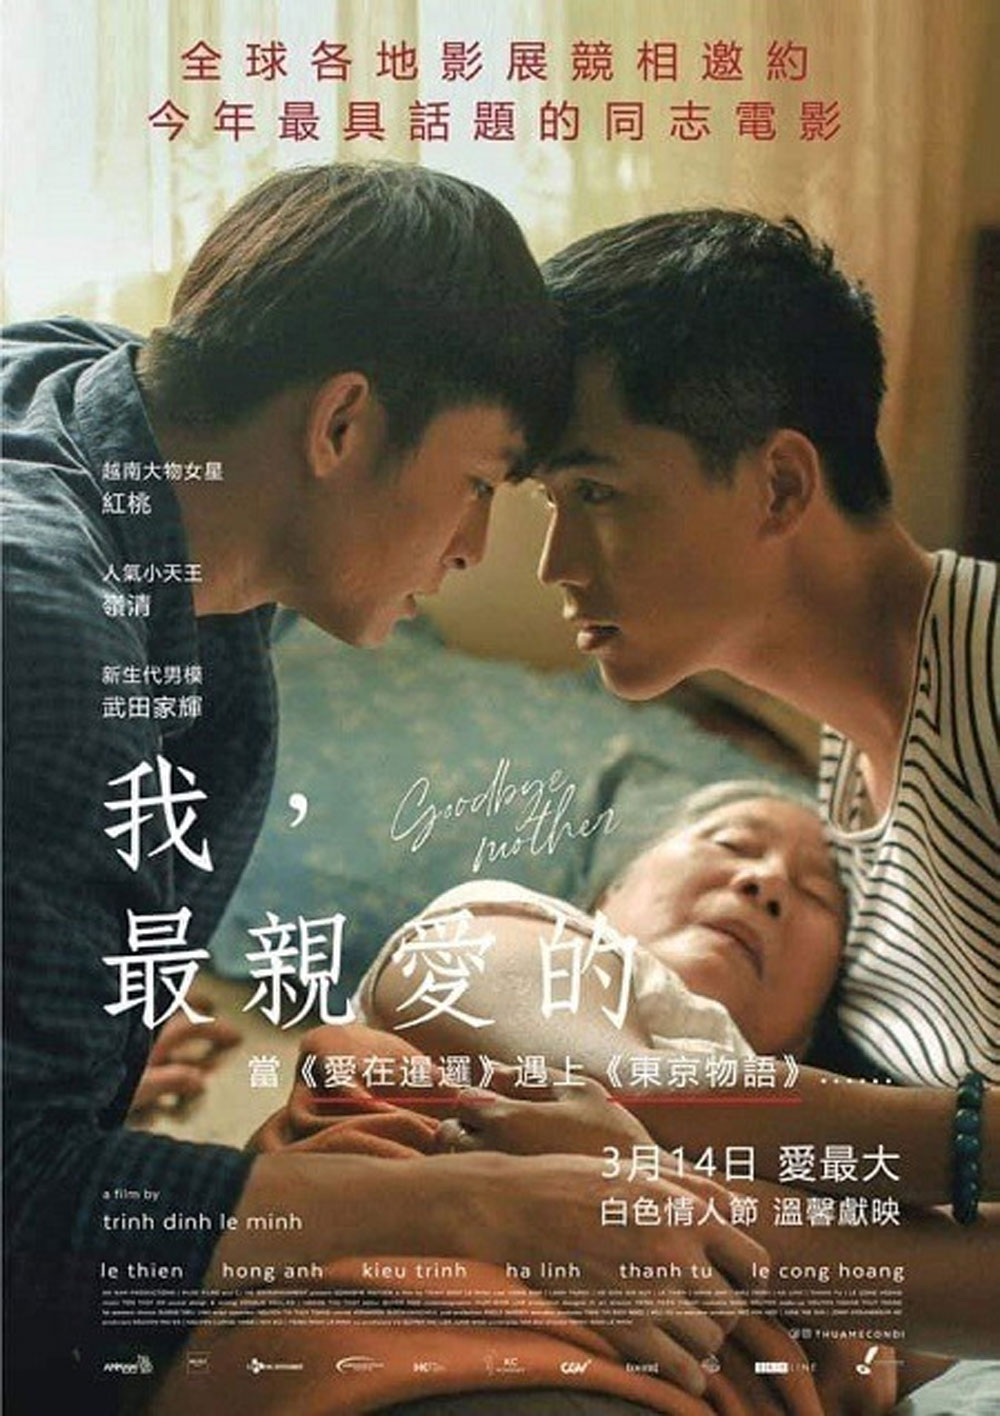 Vietnamese LGBT-themed movie, Taiwan, Thua Me Con Di, Goodbye Mother, important category, Vietnamese culture